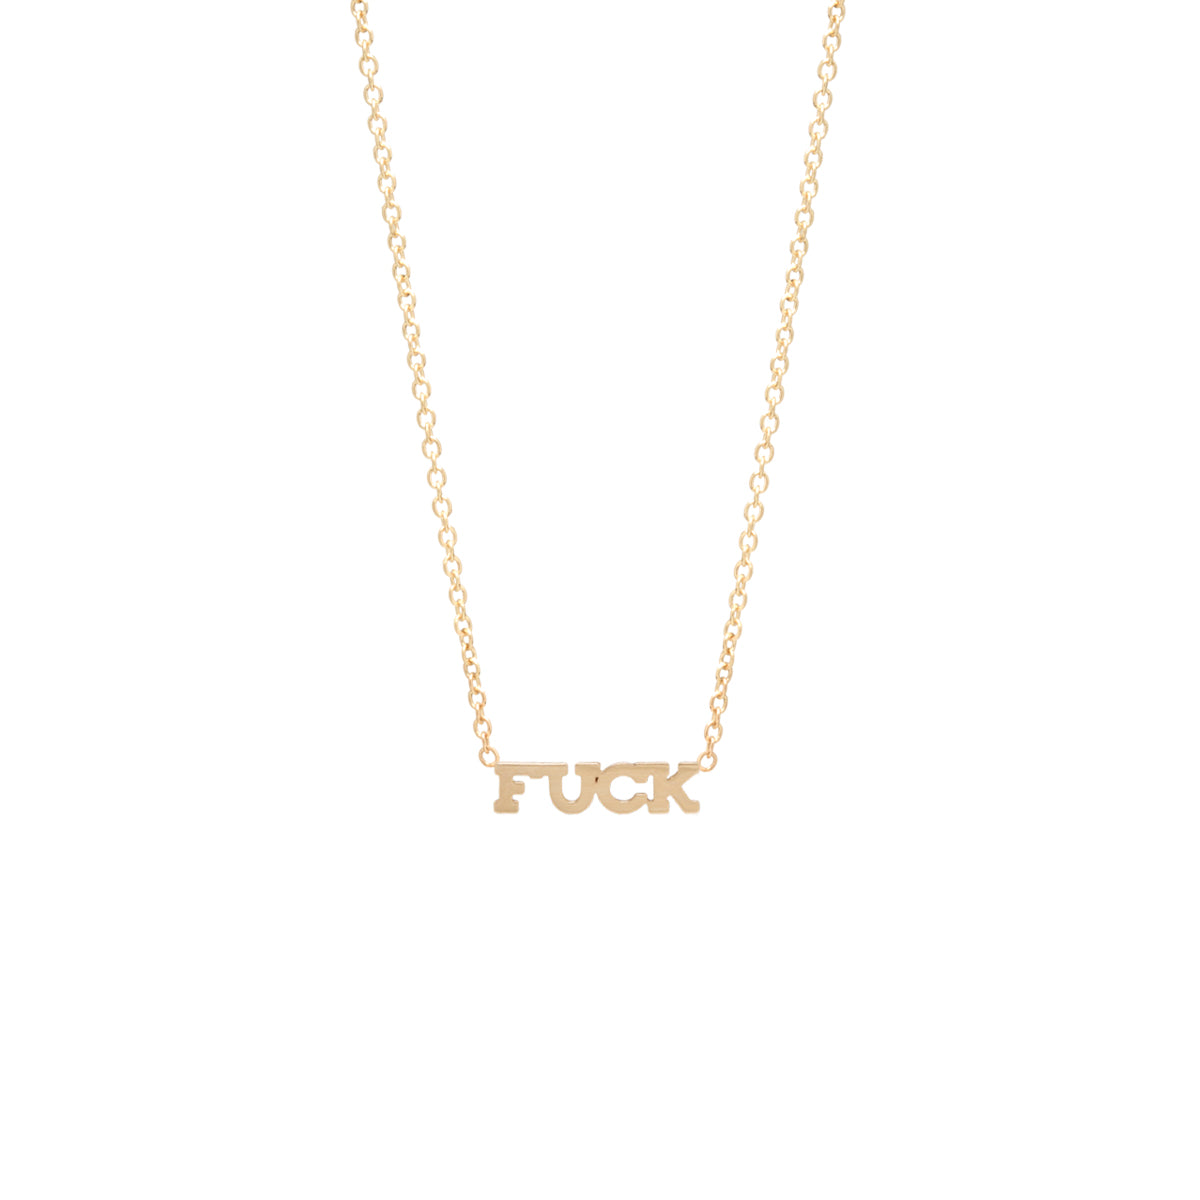 14k itty bitty FUCK necklace